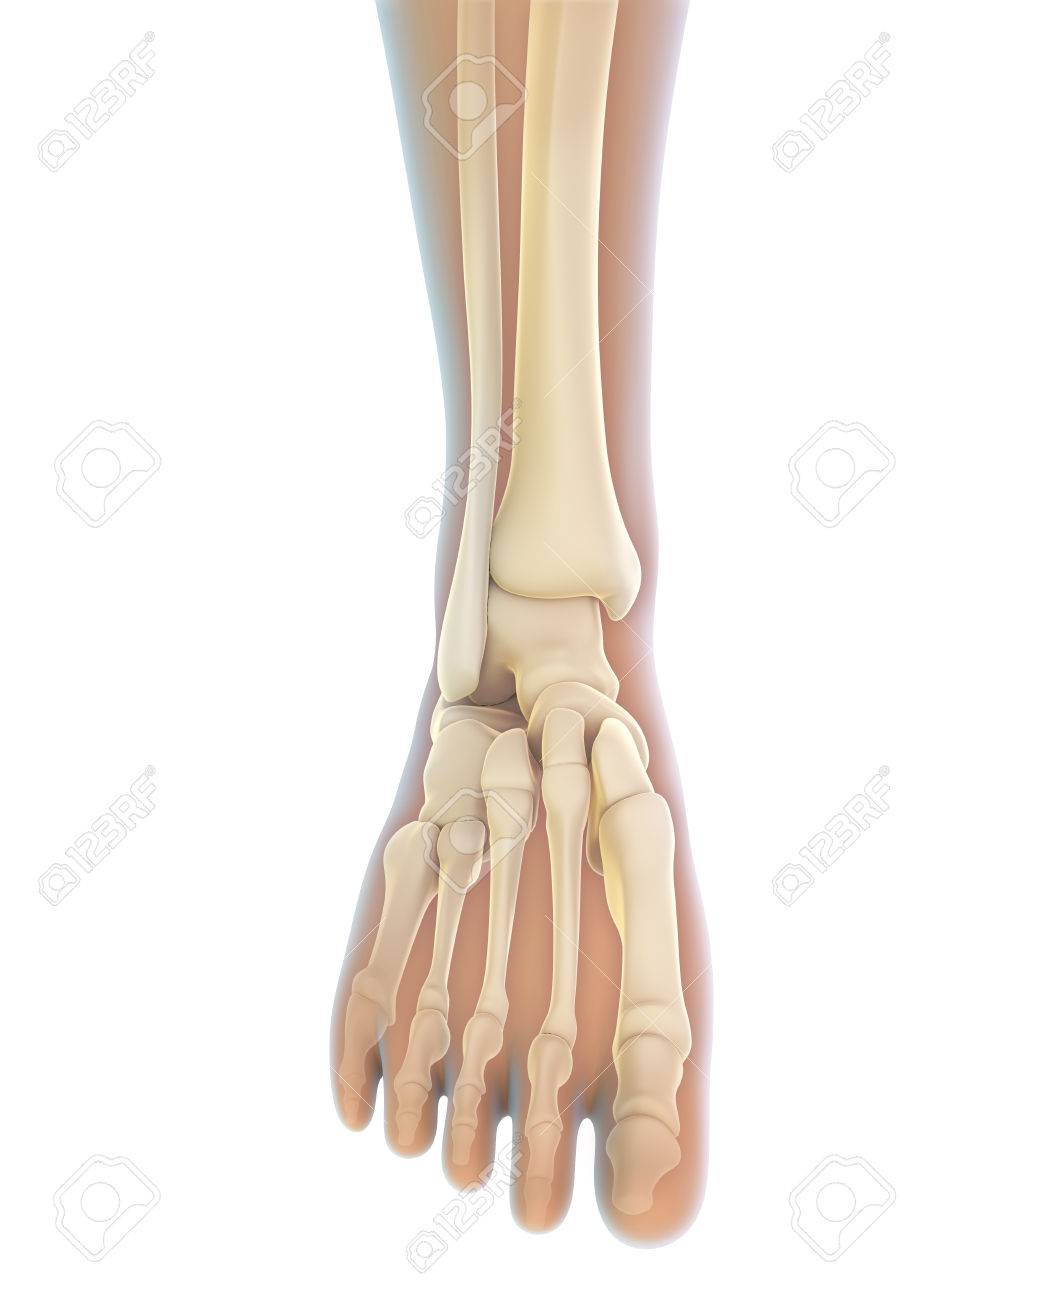 Human Foot Anatomy Stock Photo Picture And Royalty Free Image